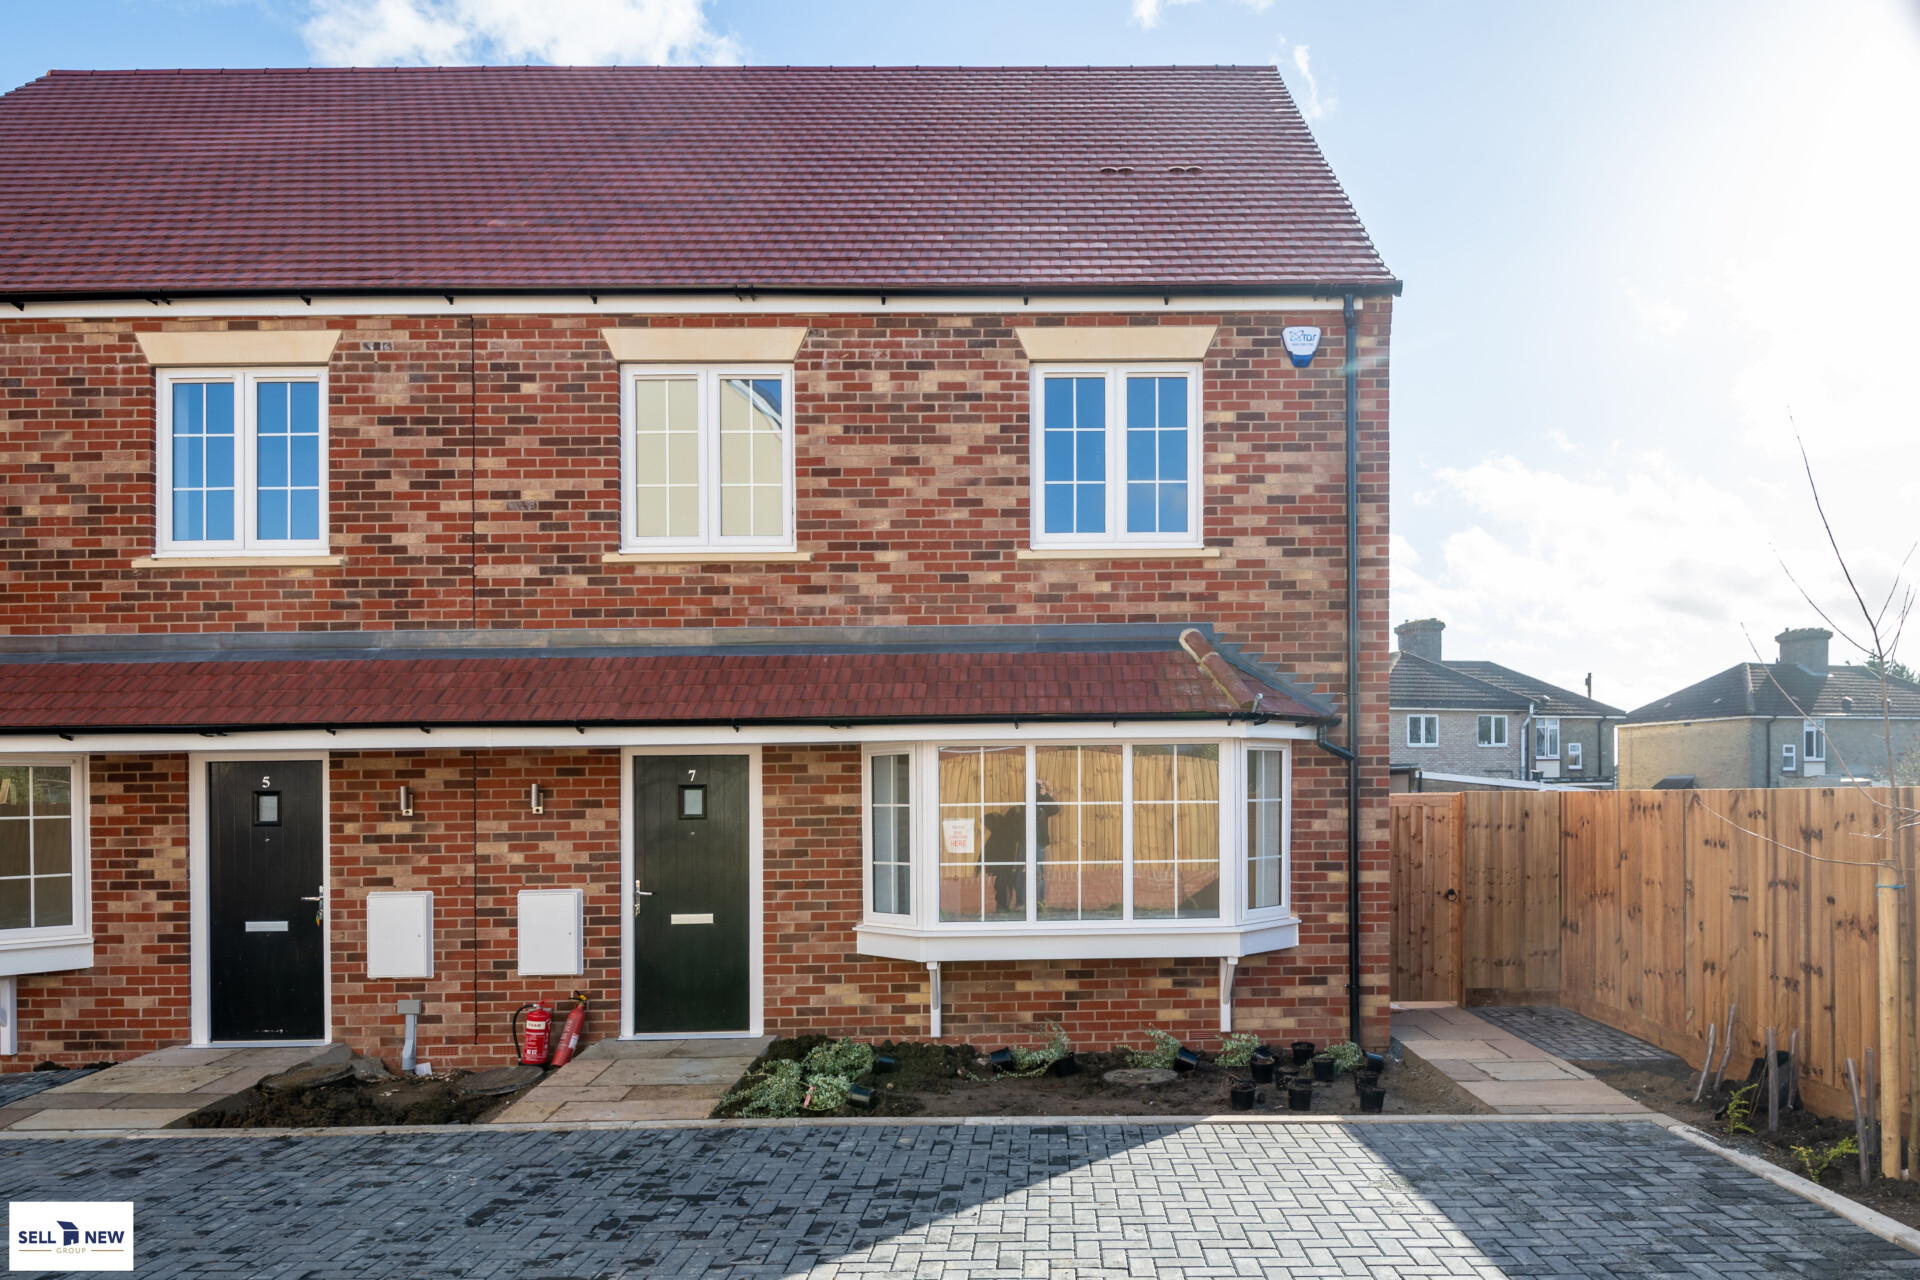 Plot 13 Nightingale Road Great Barford – Three bedroom semi-detached located at end of Cul-de-sac